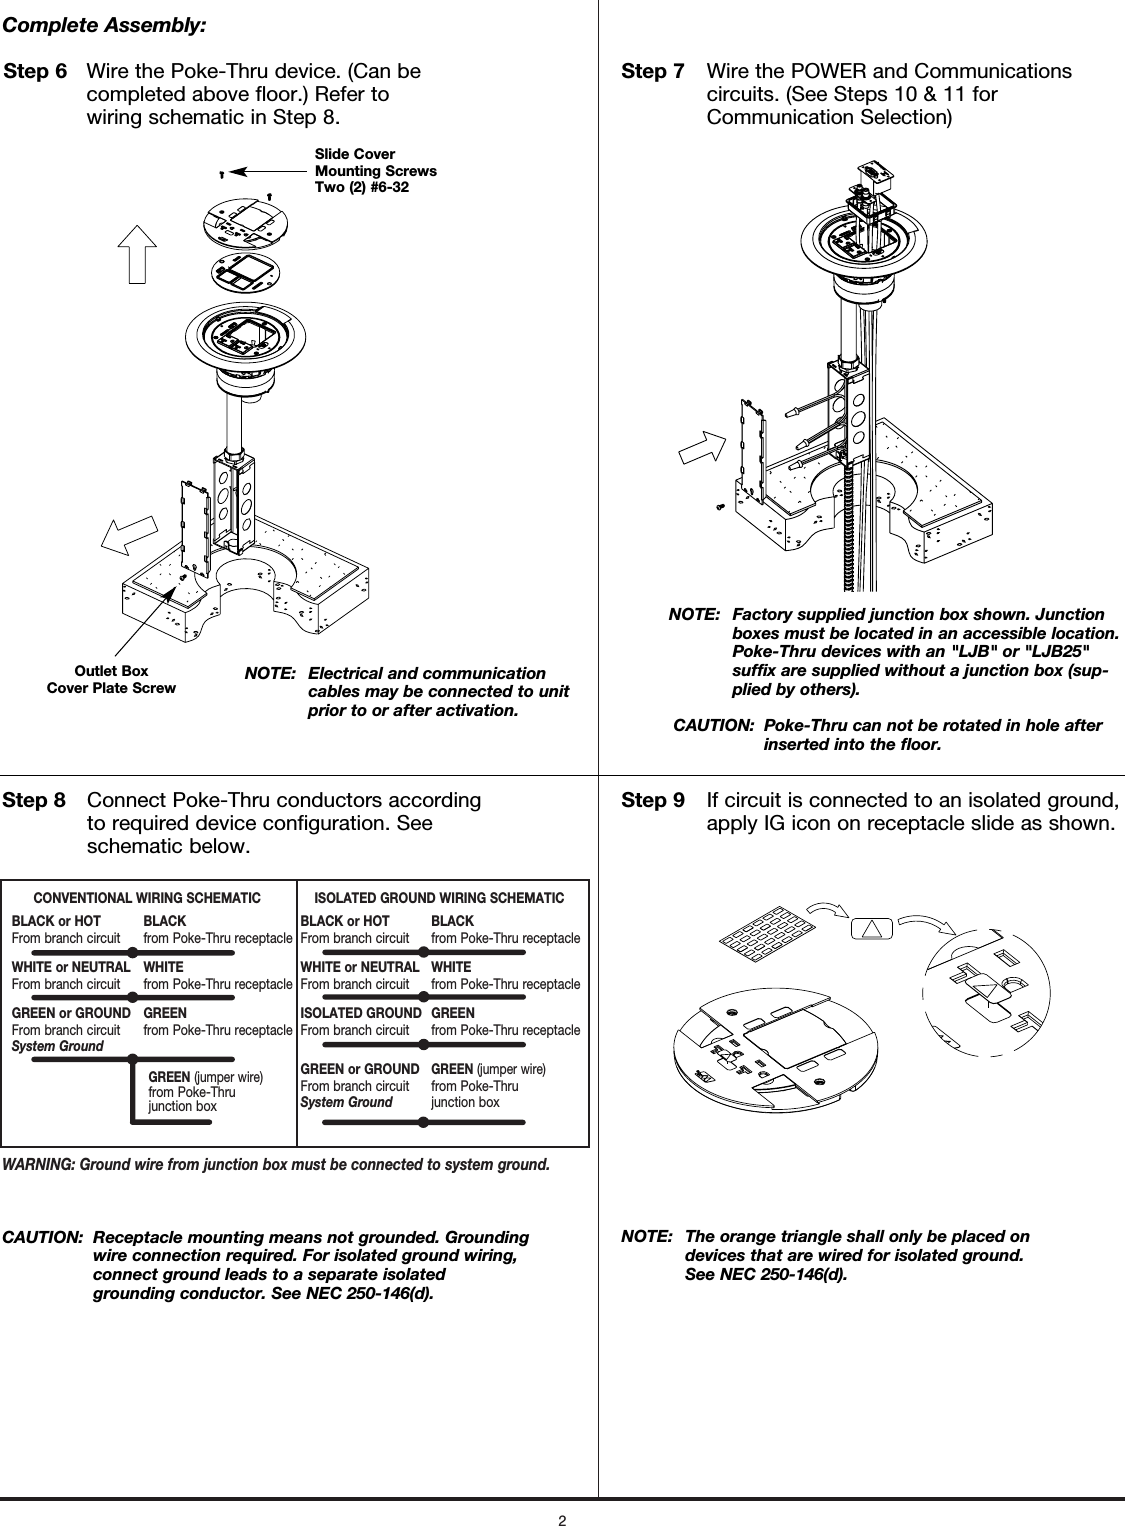 Attractive Isolated Ground Receptacle Wiring Diagram Ensign ...